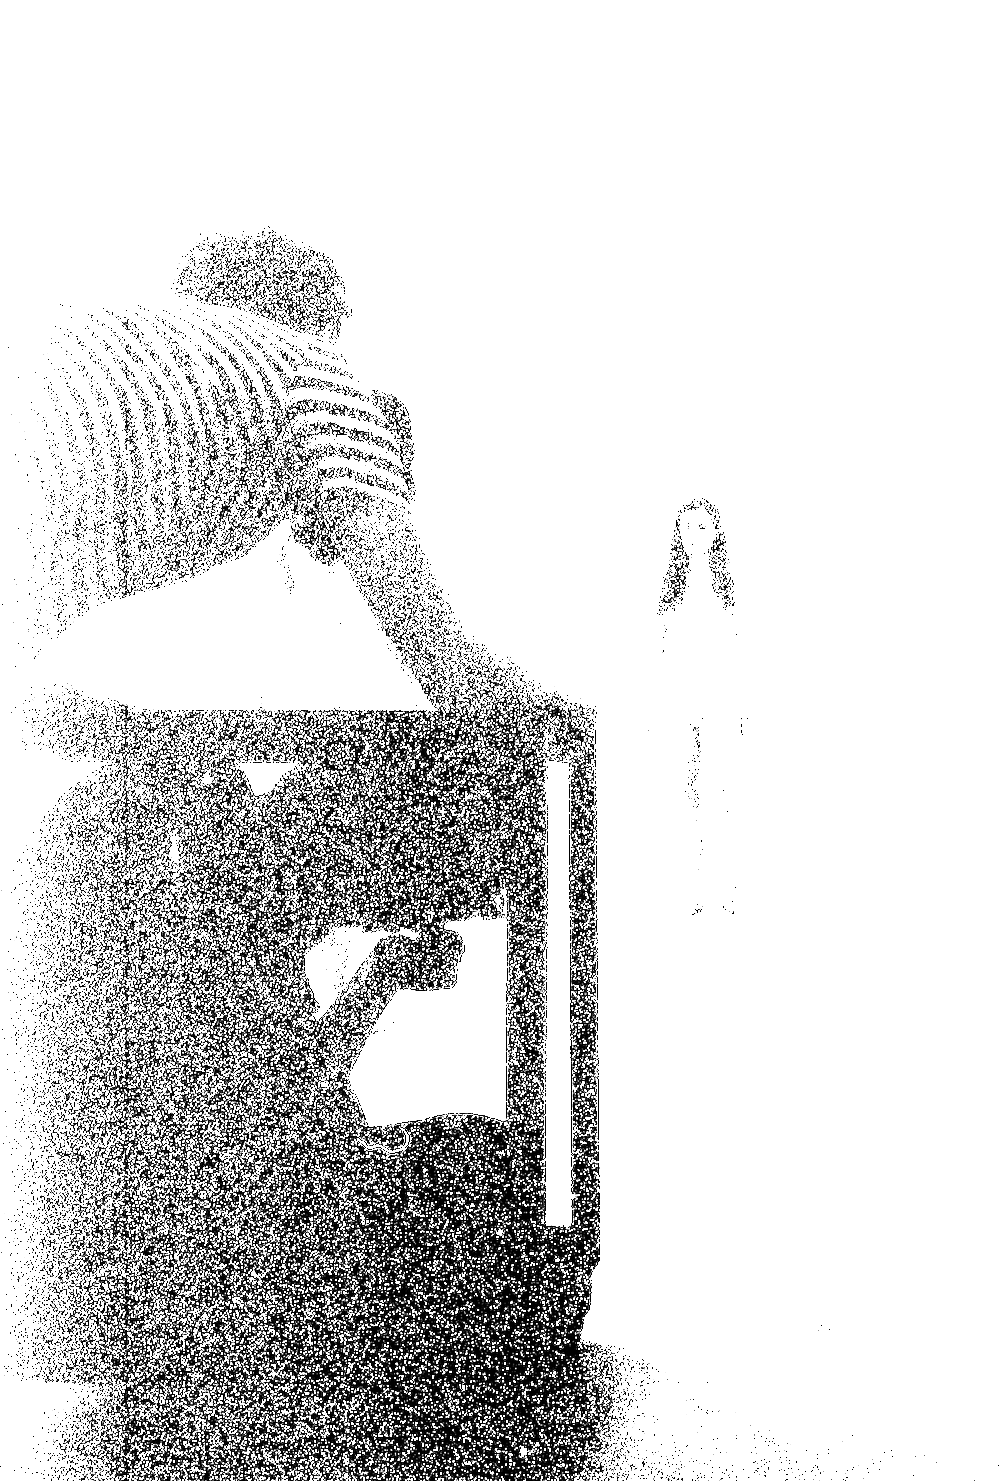 07_2018_128.png